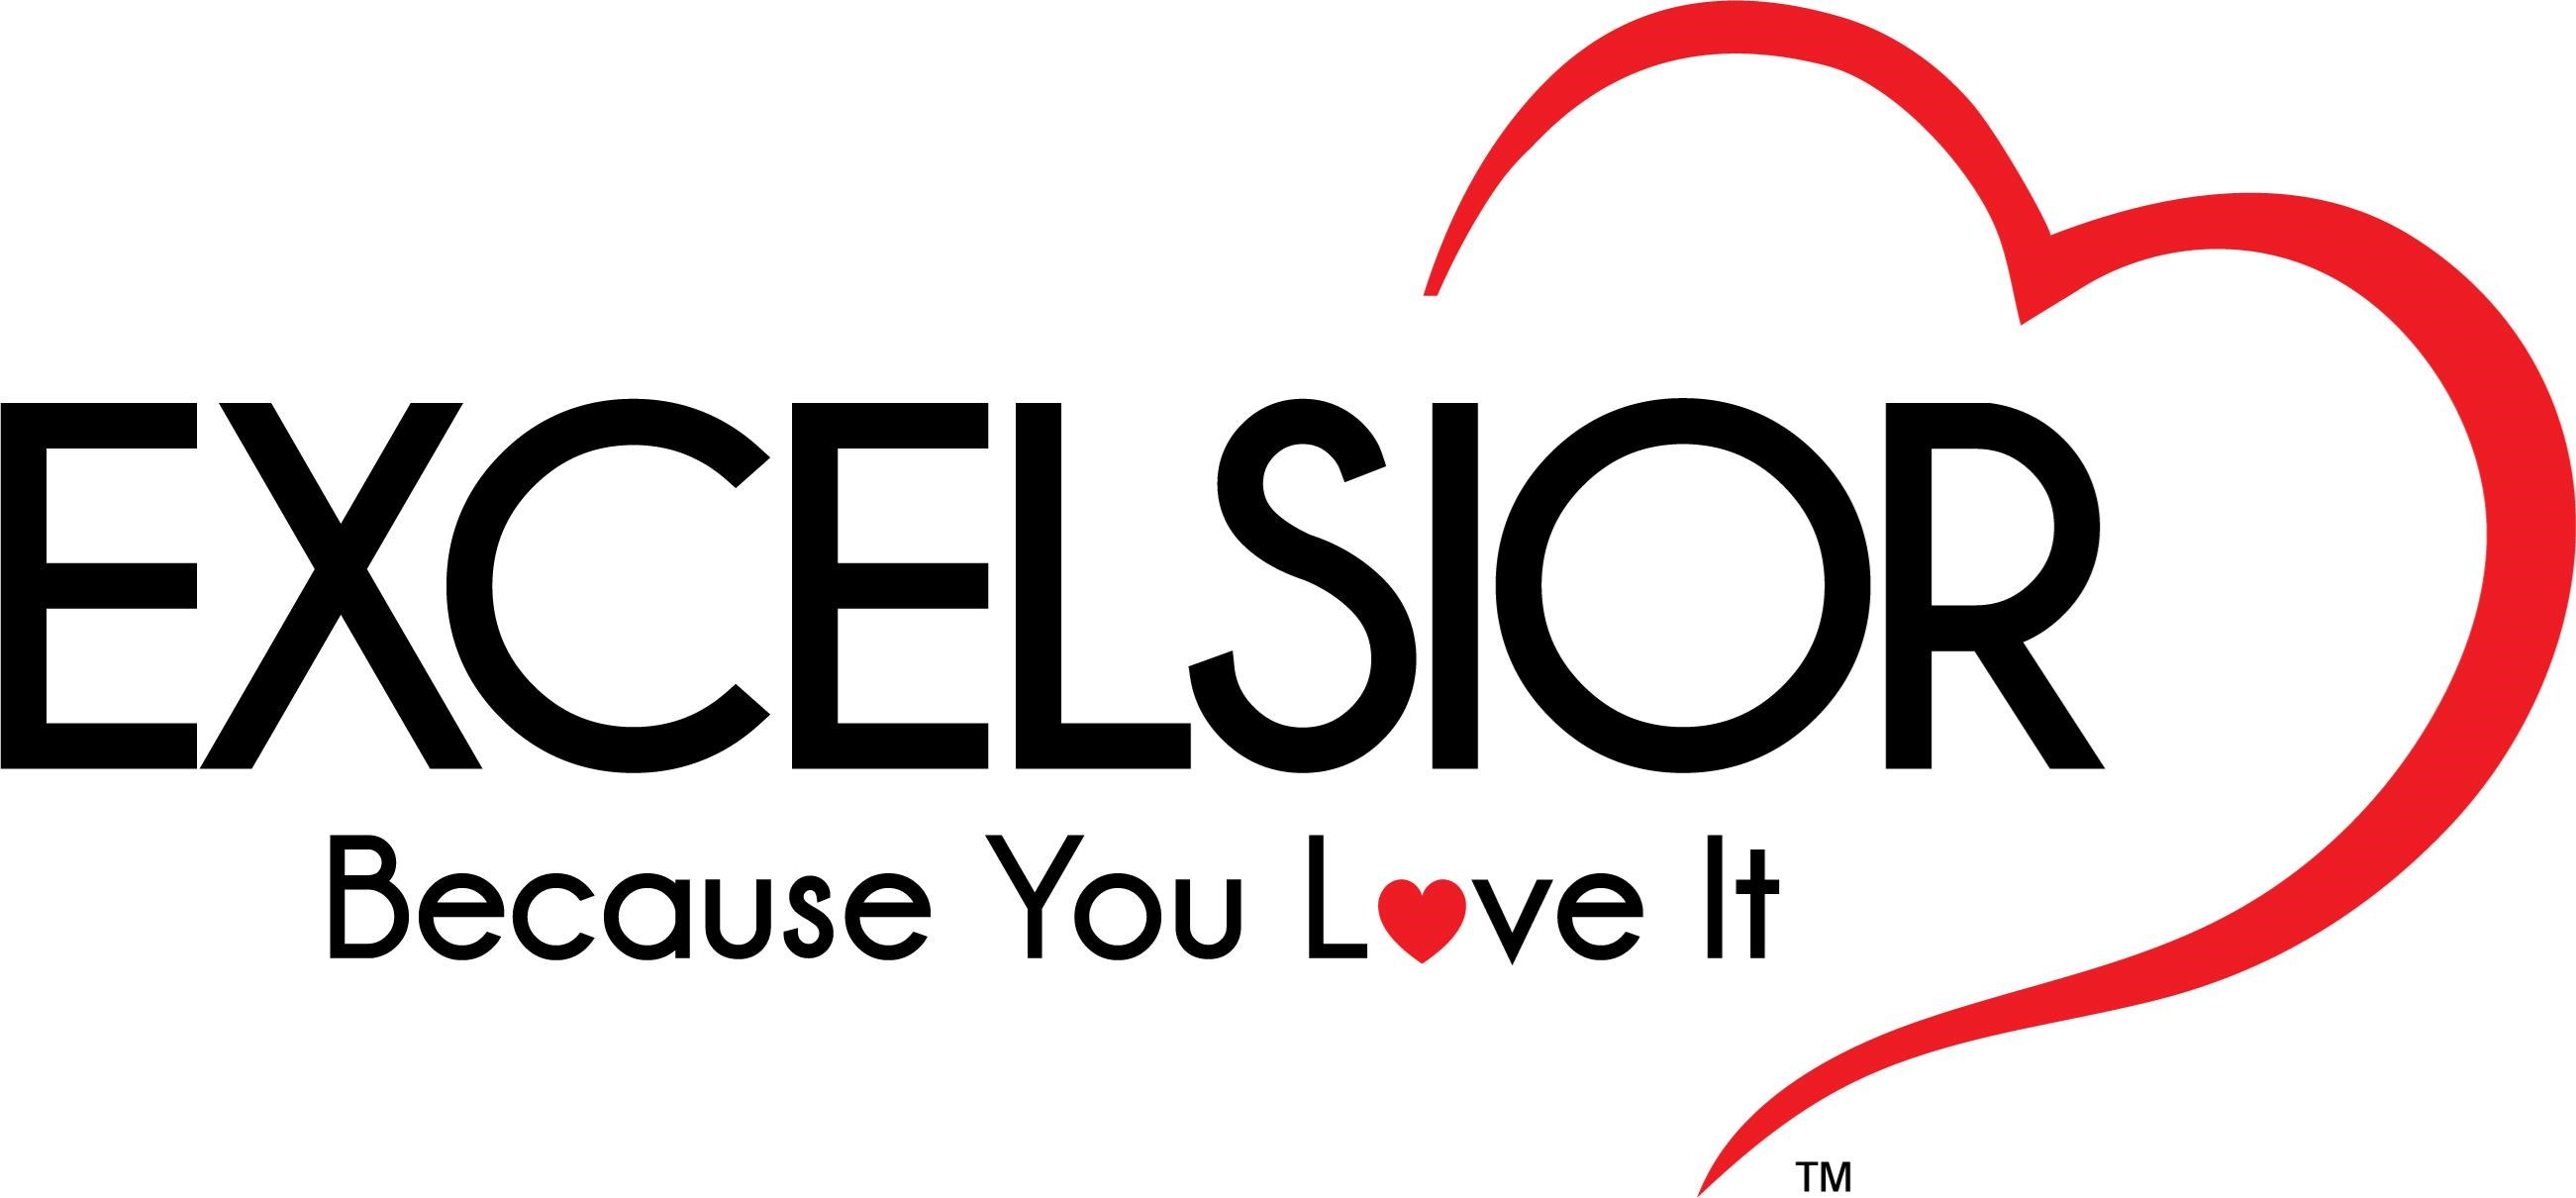 Stationary Furniture Stationary Furniture Protection $5001-$6000 by Excelsior at C. S. Wo & Sons Hawaii